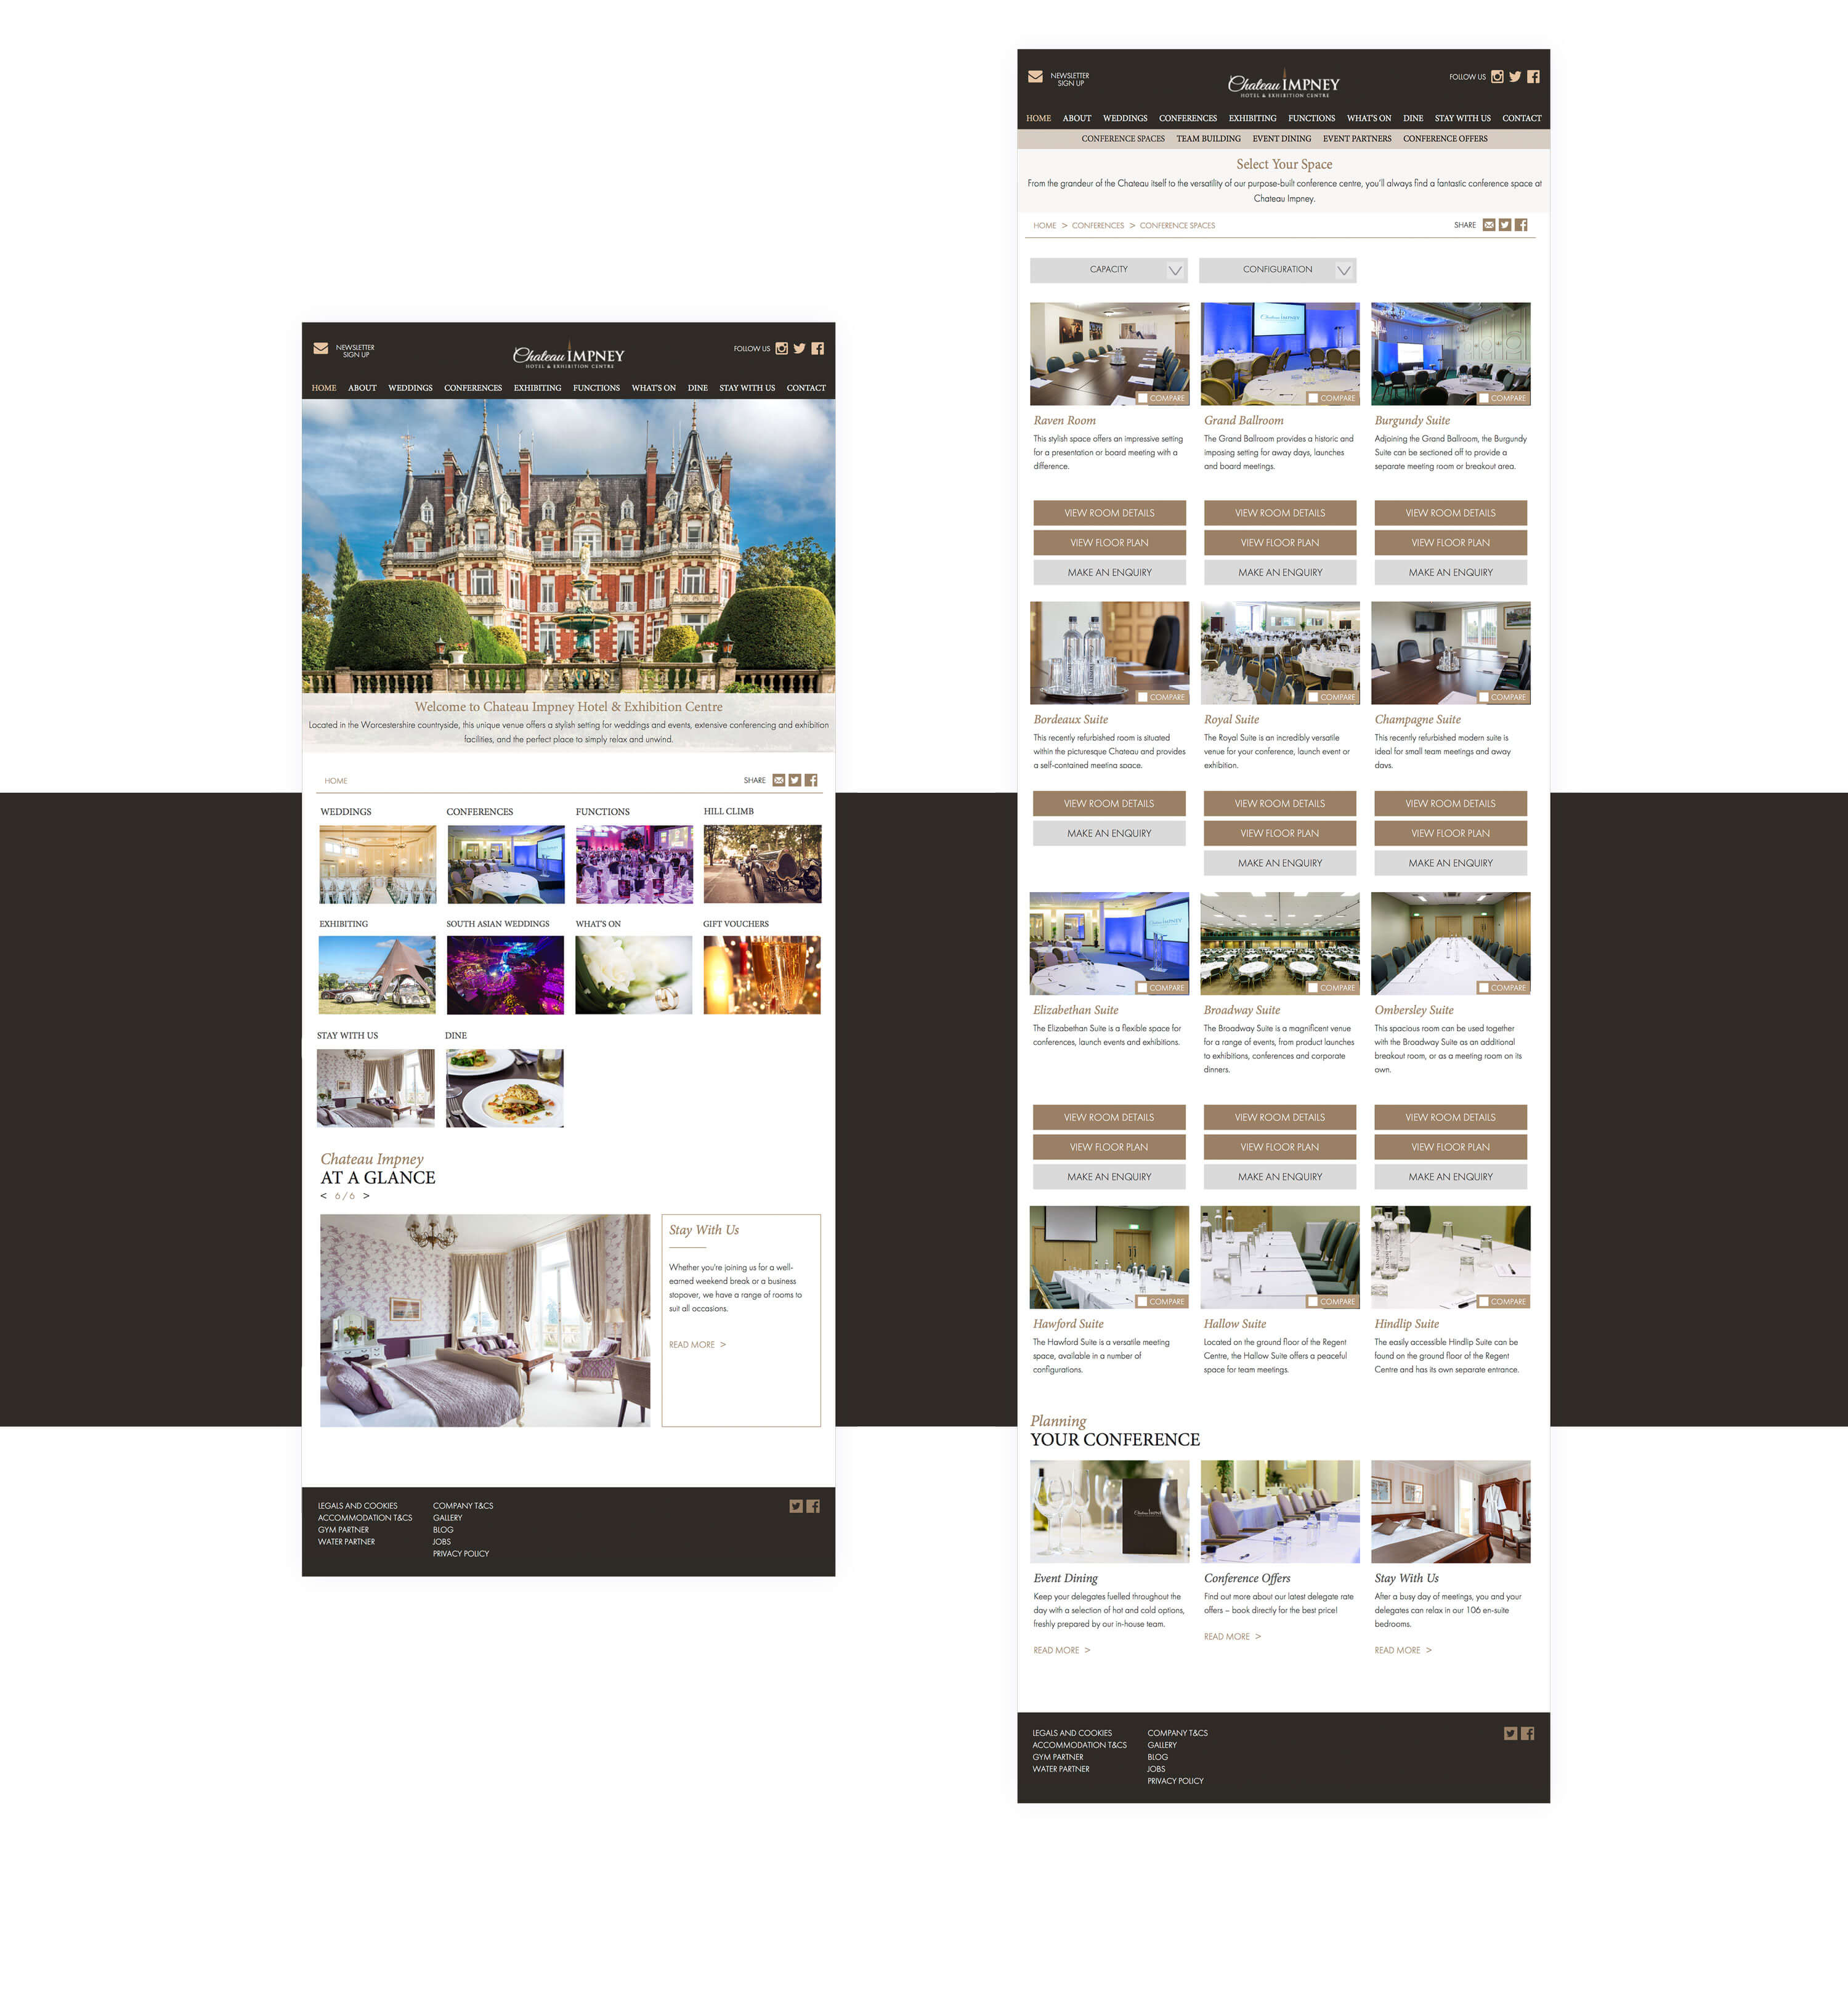 Website design for Chateau Impney by Mighty, hotel marketing agency Worcester